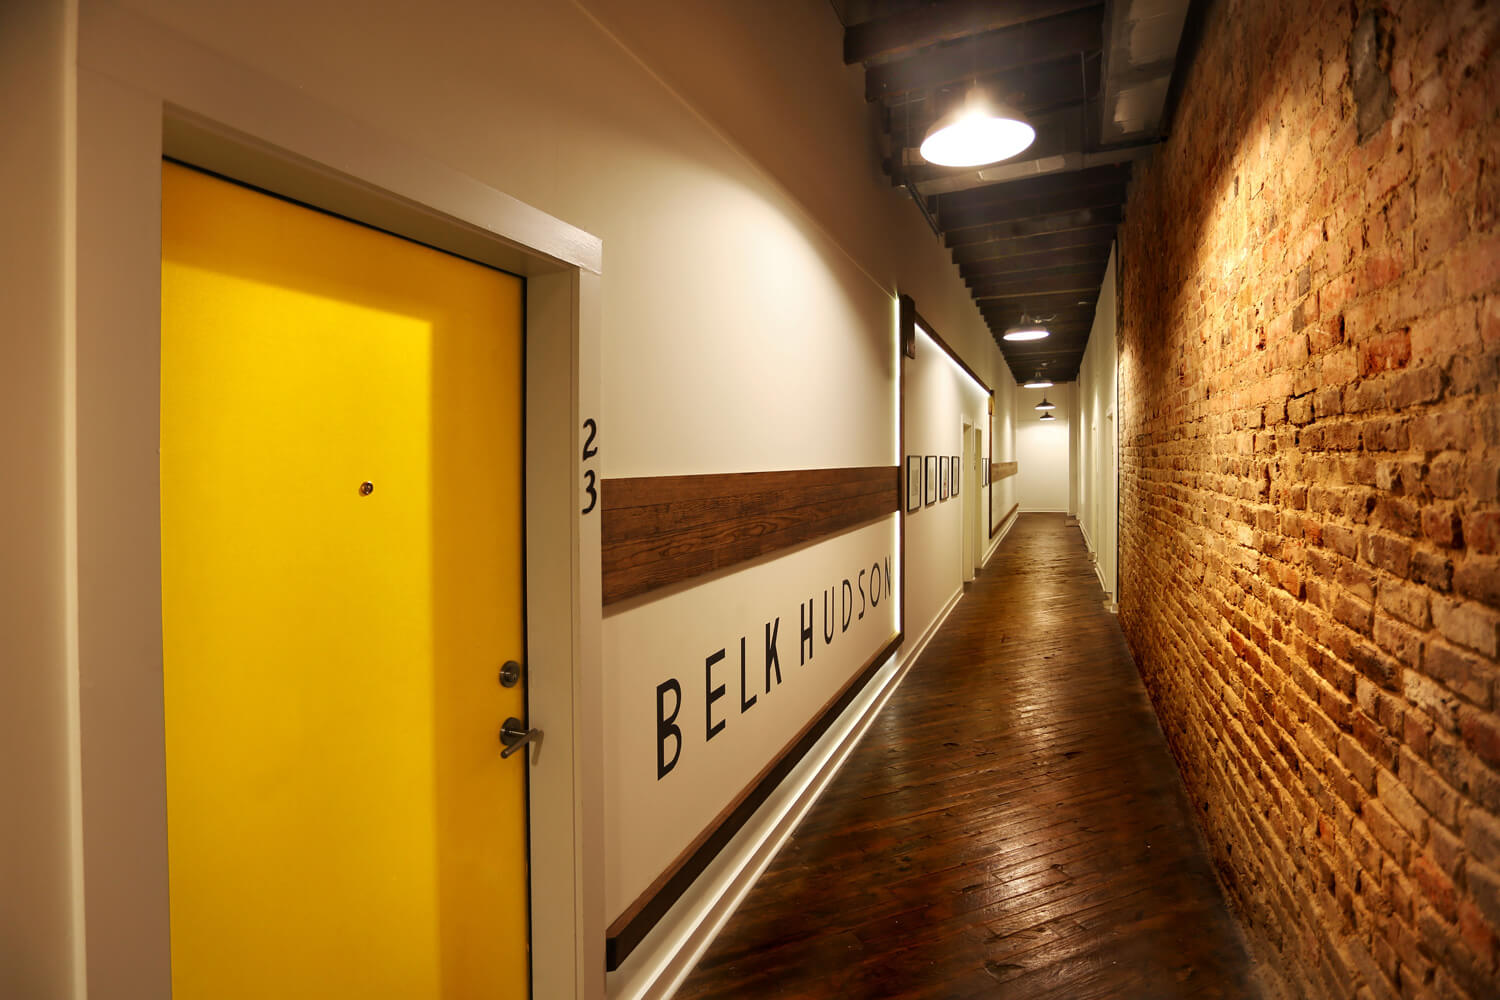 District 36 Lofts Designed by Foshee Architecture - View of Hallway with Wood Floors, Brick, and Exposed Wood Ceilings